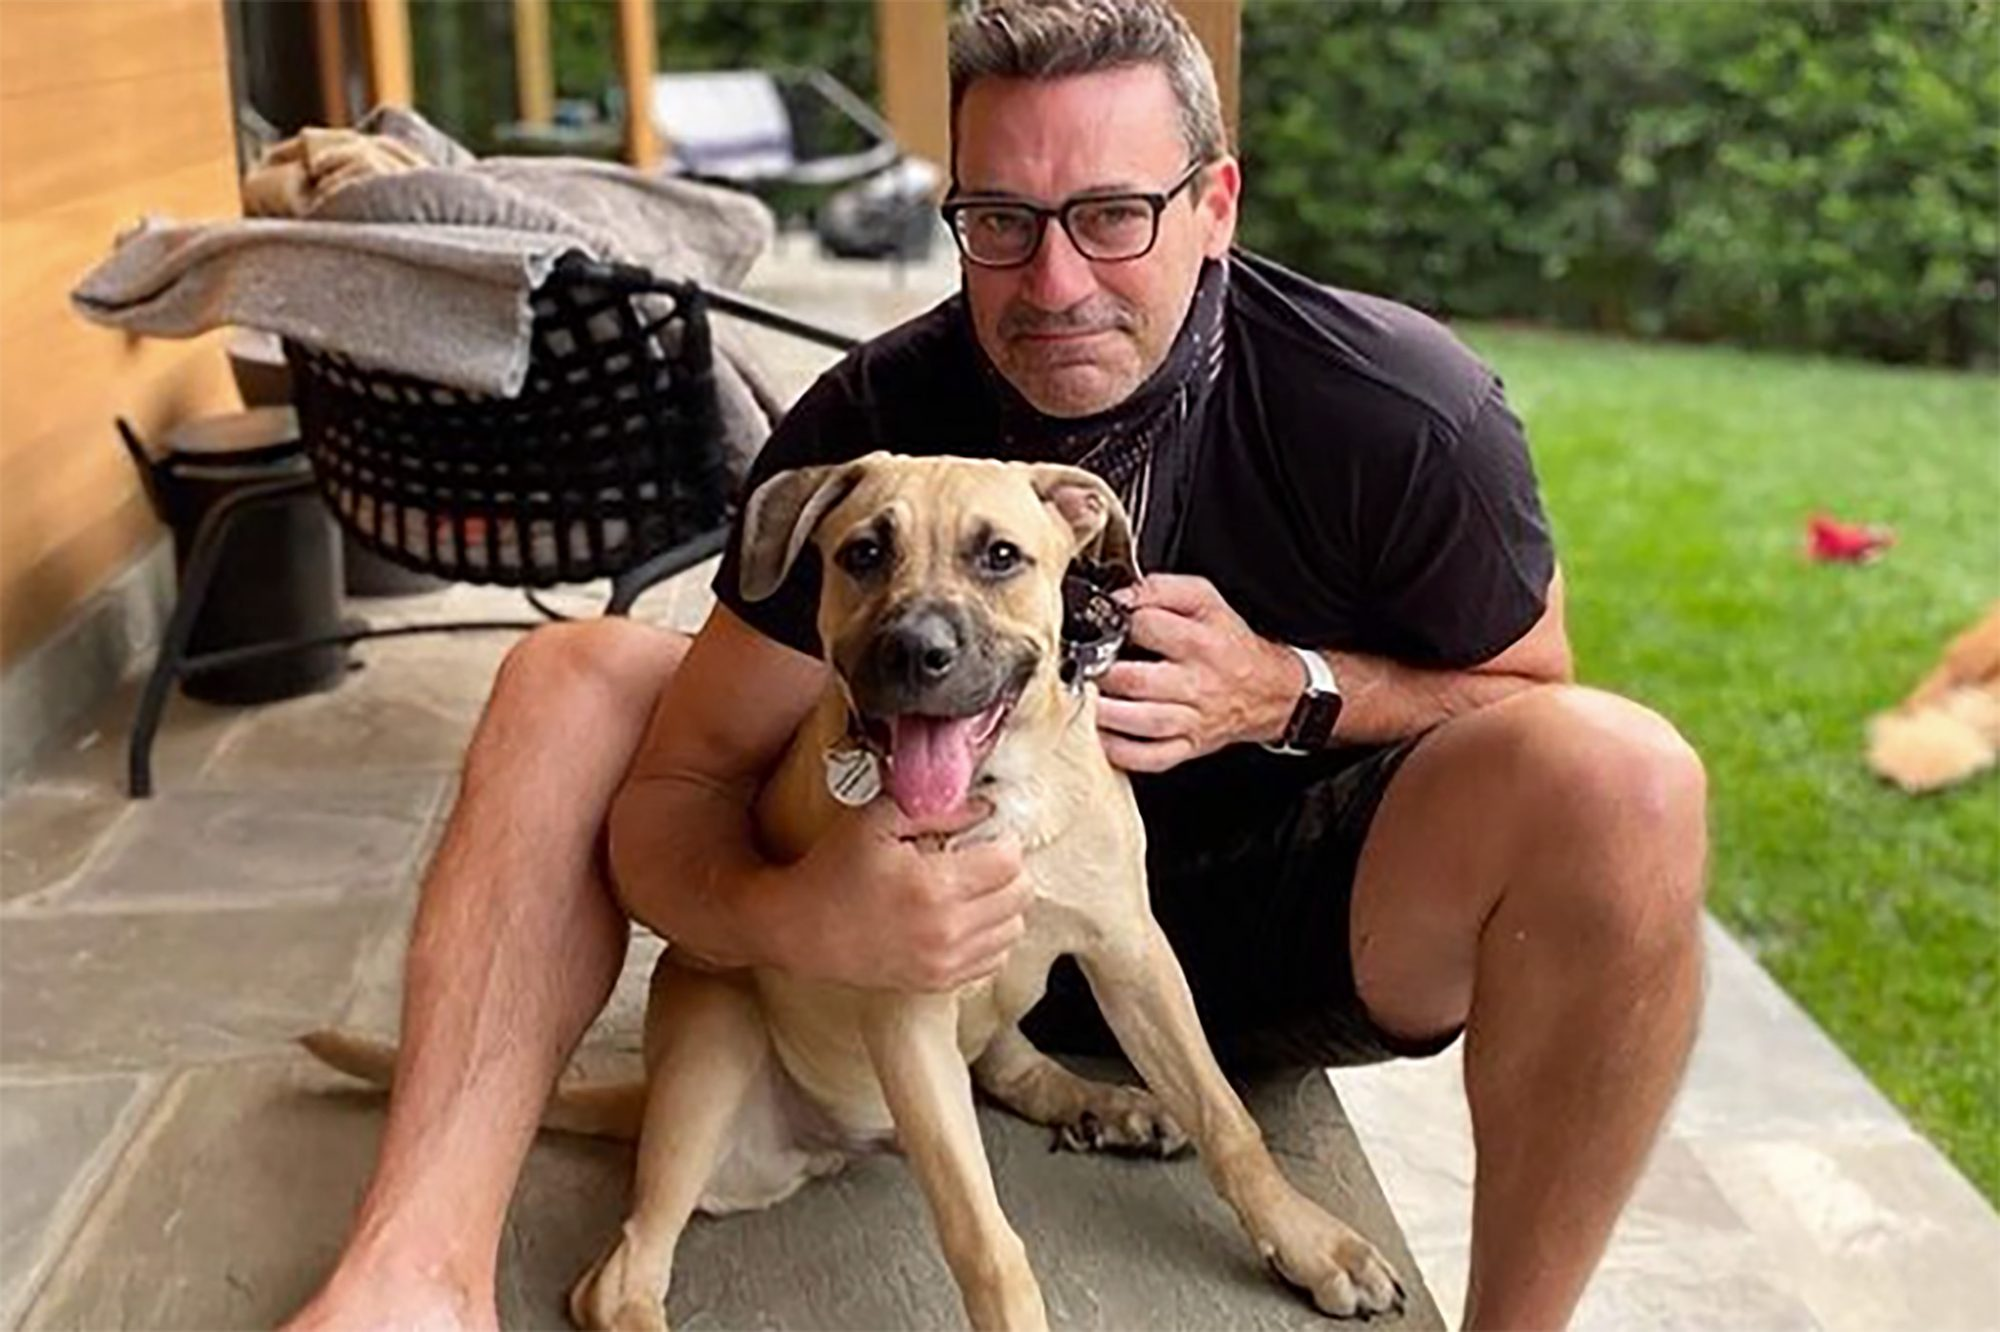 Actor John Hamm embraces dog Splash